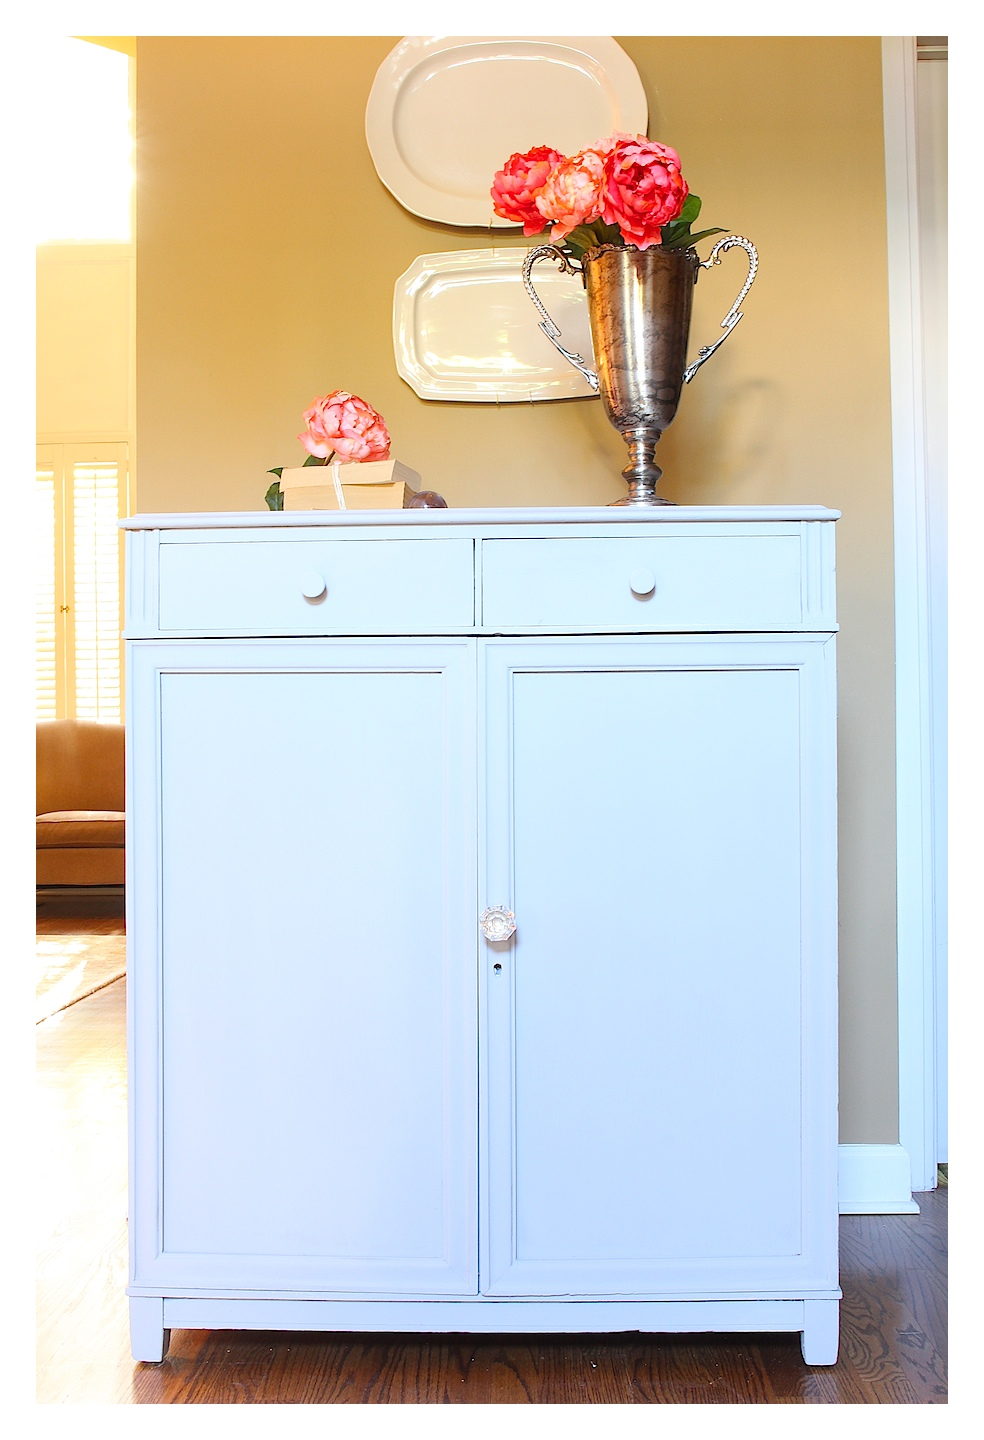 Painted Furniture - Annie Sloan Chalk Paint Paris Gray - Dresser Makeover